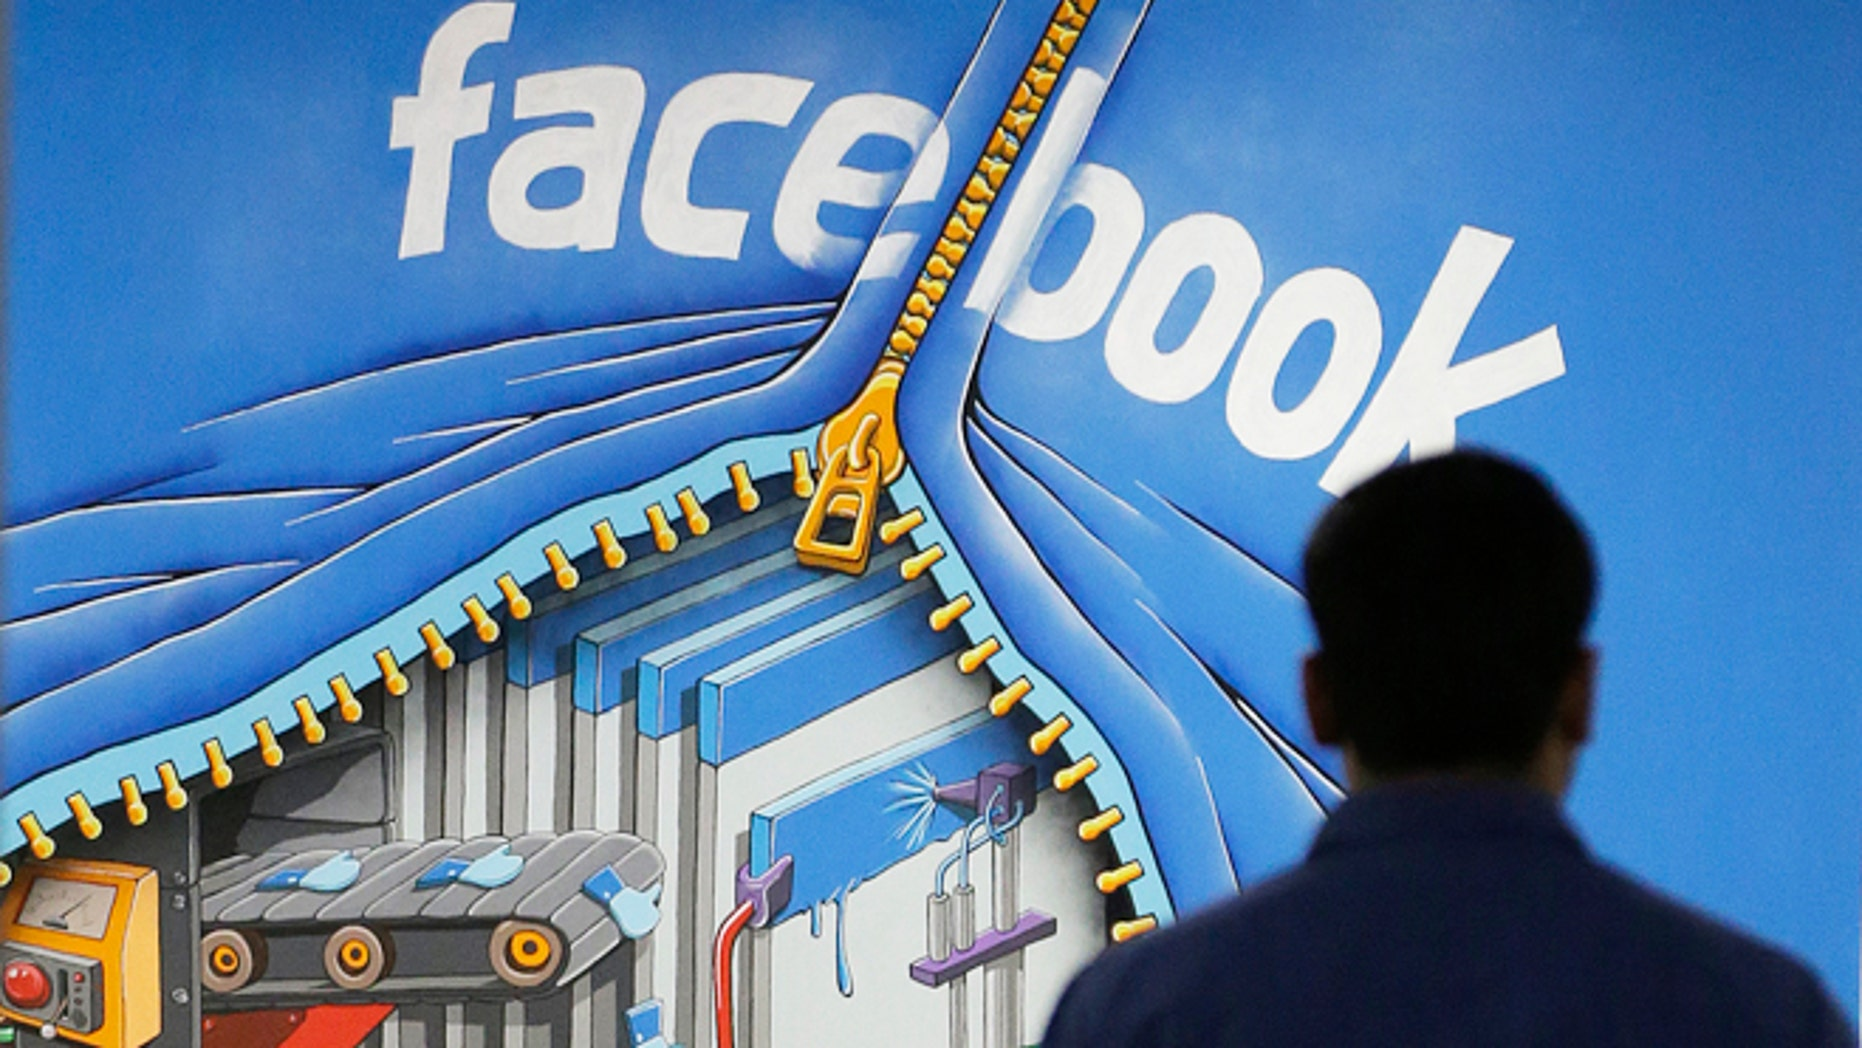 June 21, 2013: Facebook said a bug in its system caused 6 million users' contact information to be inadvertently exposed.